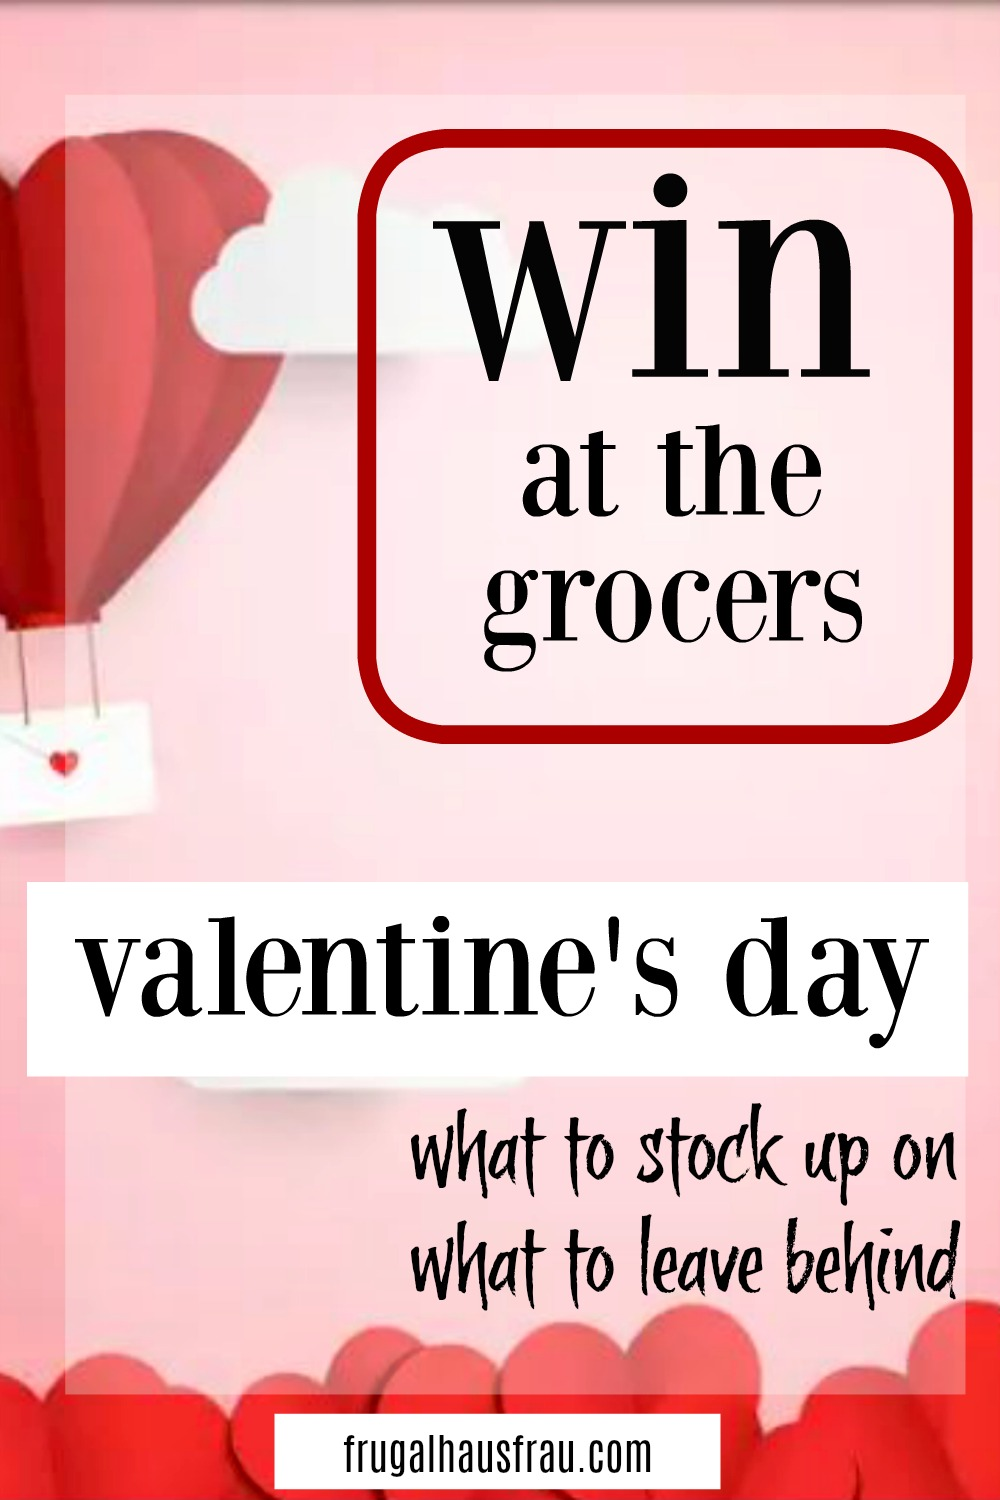 Even if you're not into Valentine's Day, you're going to be in to some of the sales once you learn to leverage those savings to your advantage! See what's likely to be on sale (it's not just candy) when it might be at a great price again, and get an idea of how much you should buy, what to avoid and how to save the most money on these items! #HolidayGrocerySales #SaveMoneyOnGroceries #HowToBuySmart #SaveMoneyOnGroceriesValentine'sDay #SaveMoneyValentines